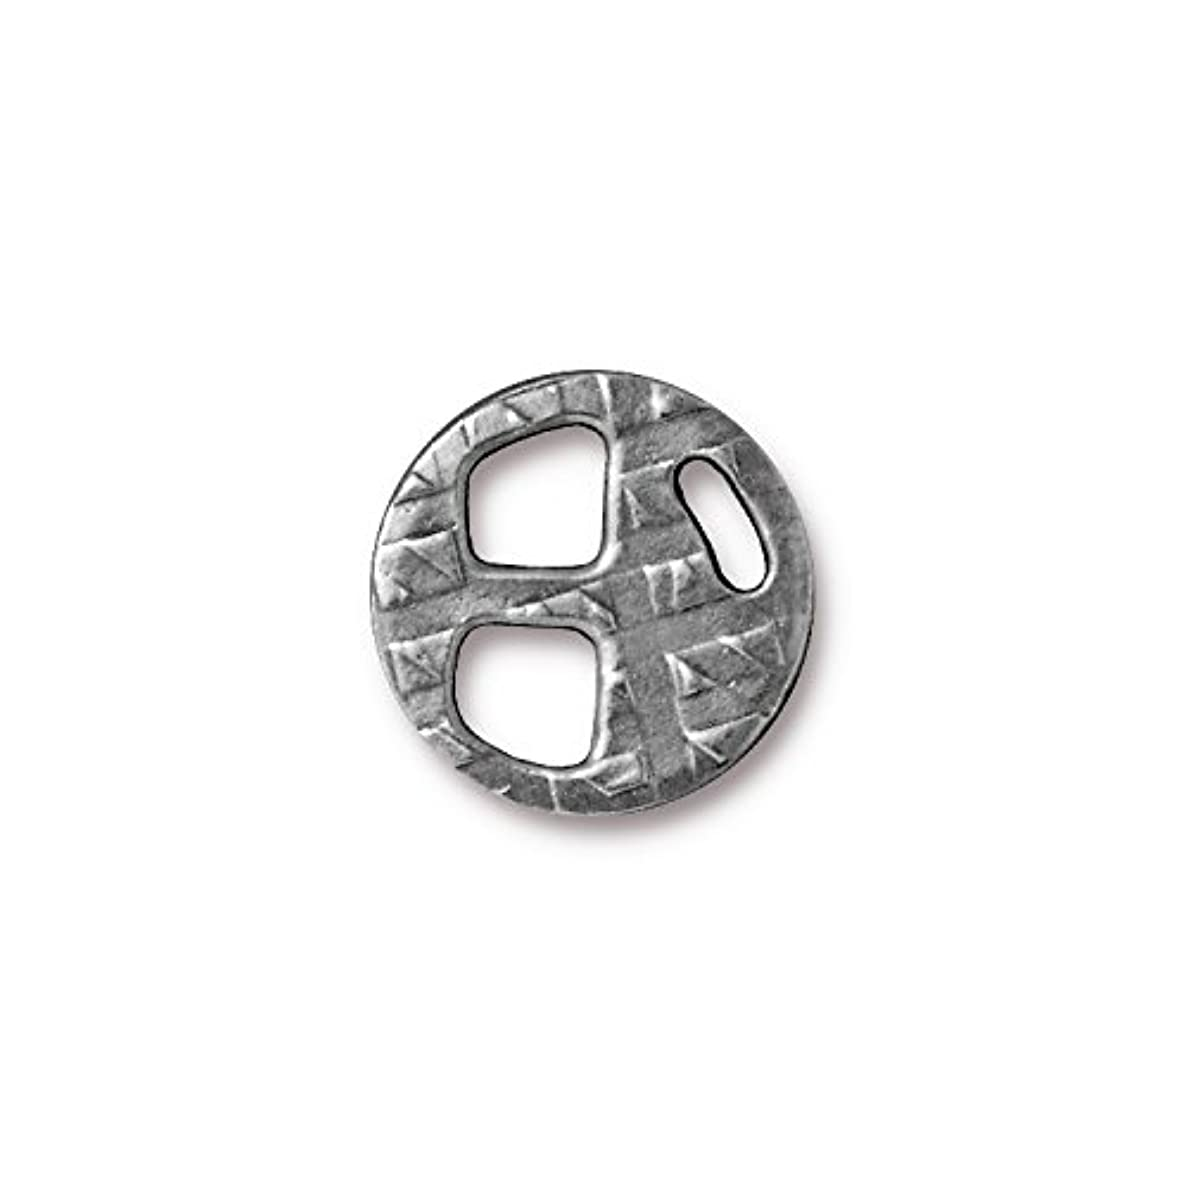 TierraCast Tri-Buckle, 5mm/18mm, Antique Pewter, 3-Pack